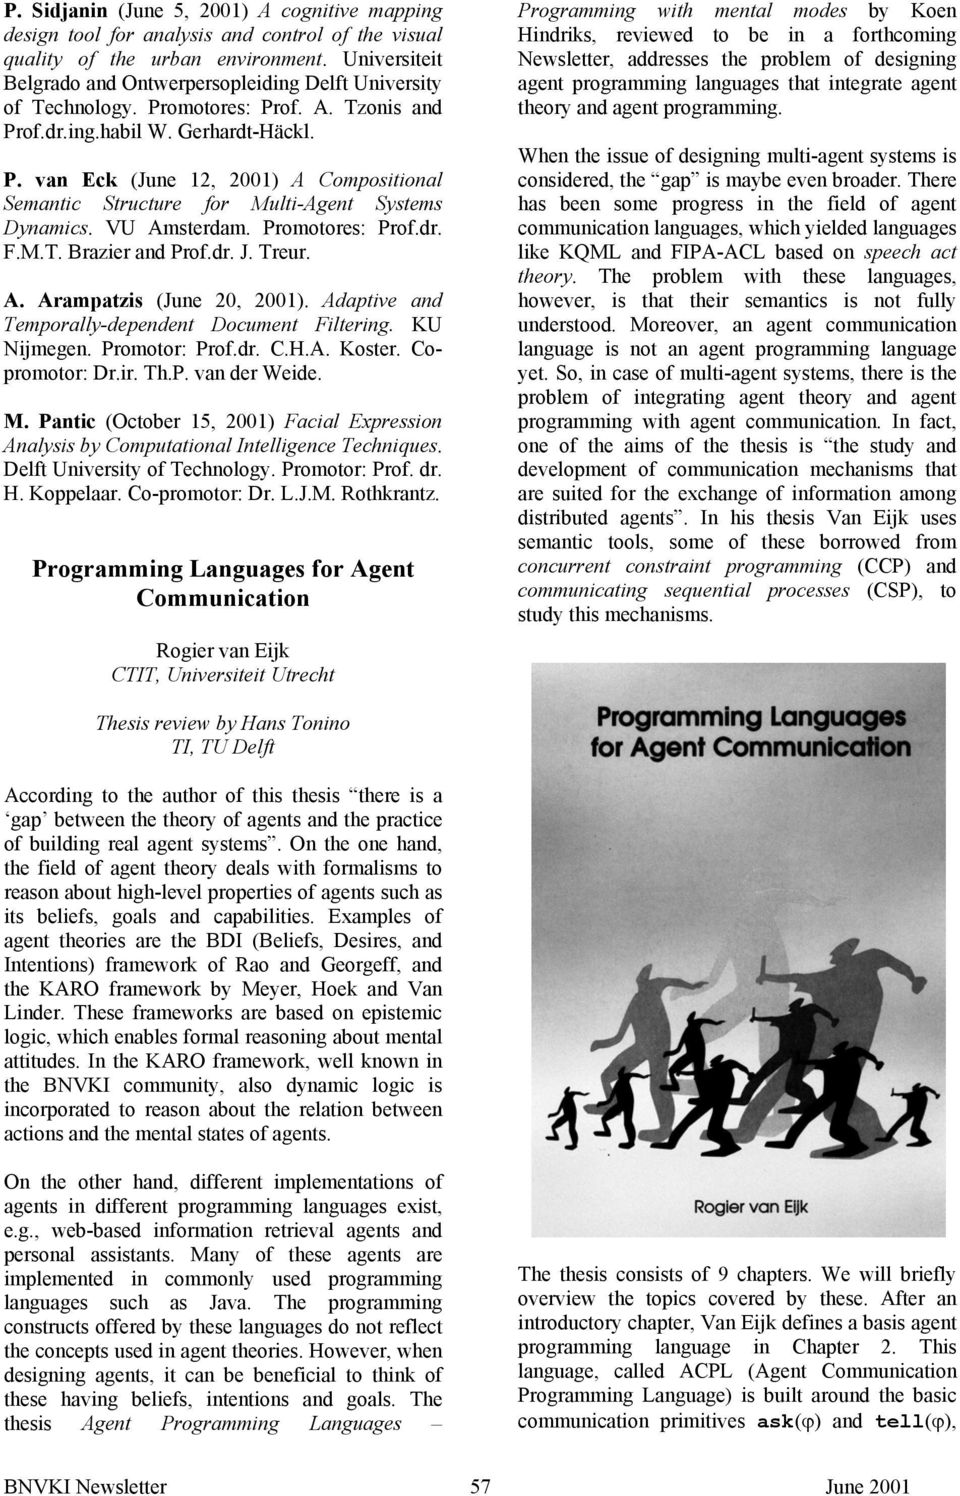 VU Amsterdam. Promotores: Prof.dr. F.M.T. Brazier and Prof.dr. J. Treur. A. Arampatzis (June 20, 2001). Adaptive and Temporally-dependent Document Filtering. KU Nijmegen. Promotor: Prof.dr. C.H.A. Koster.